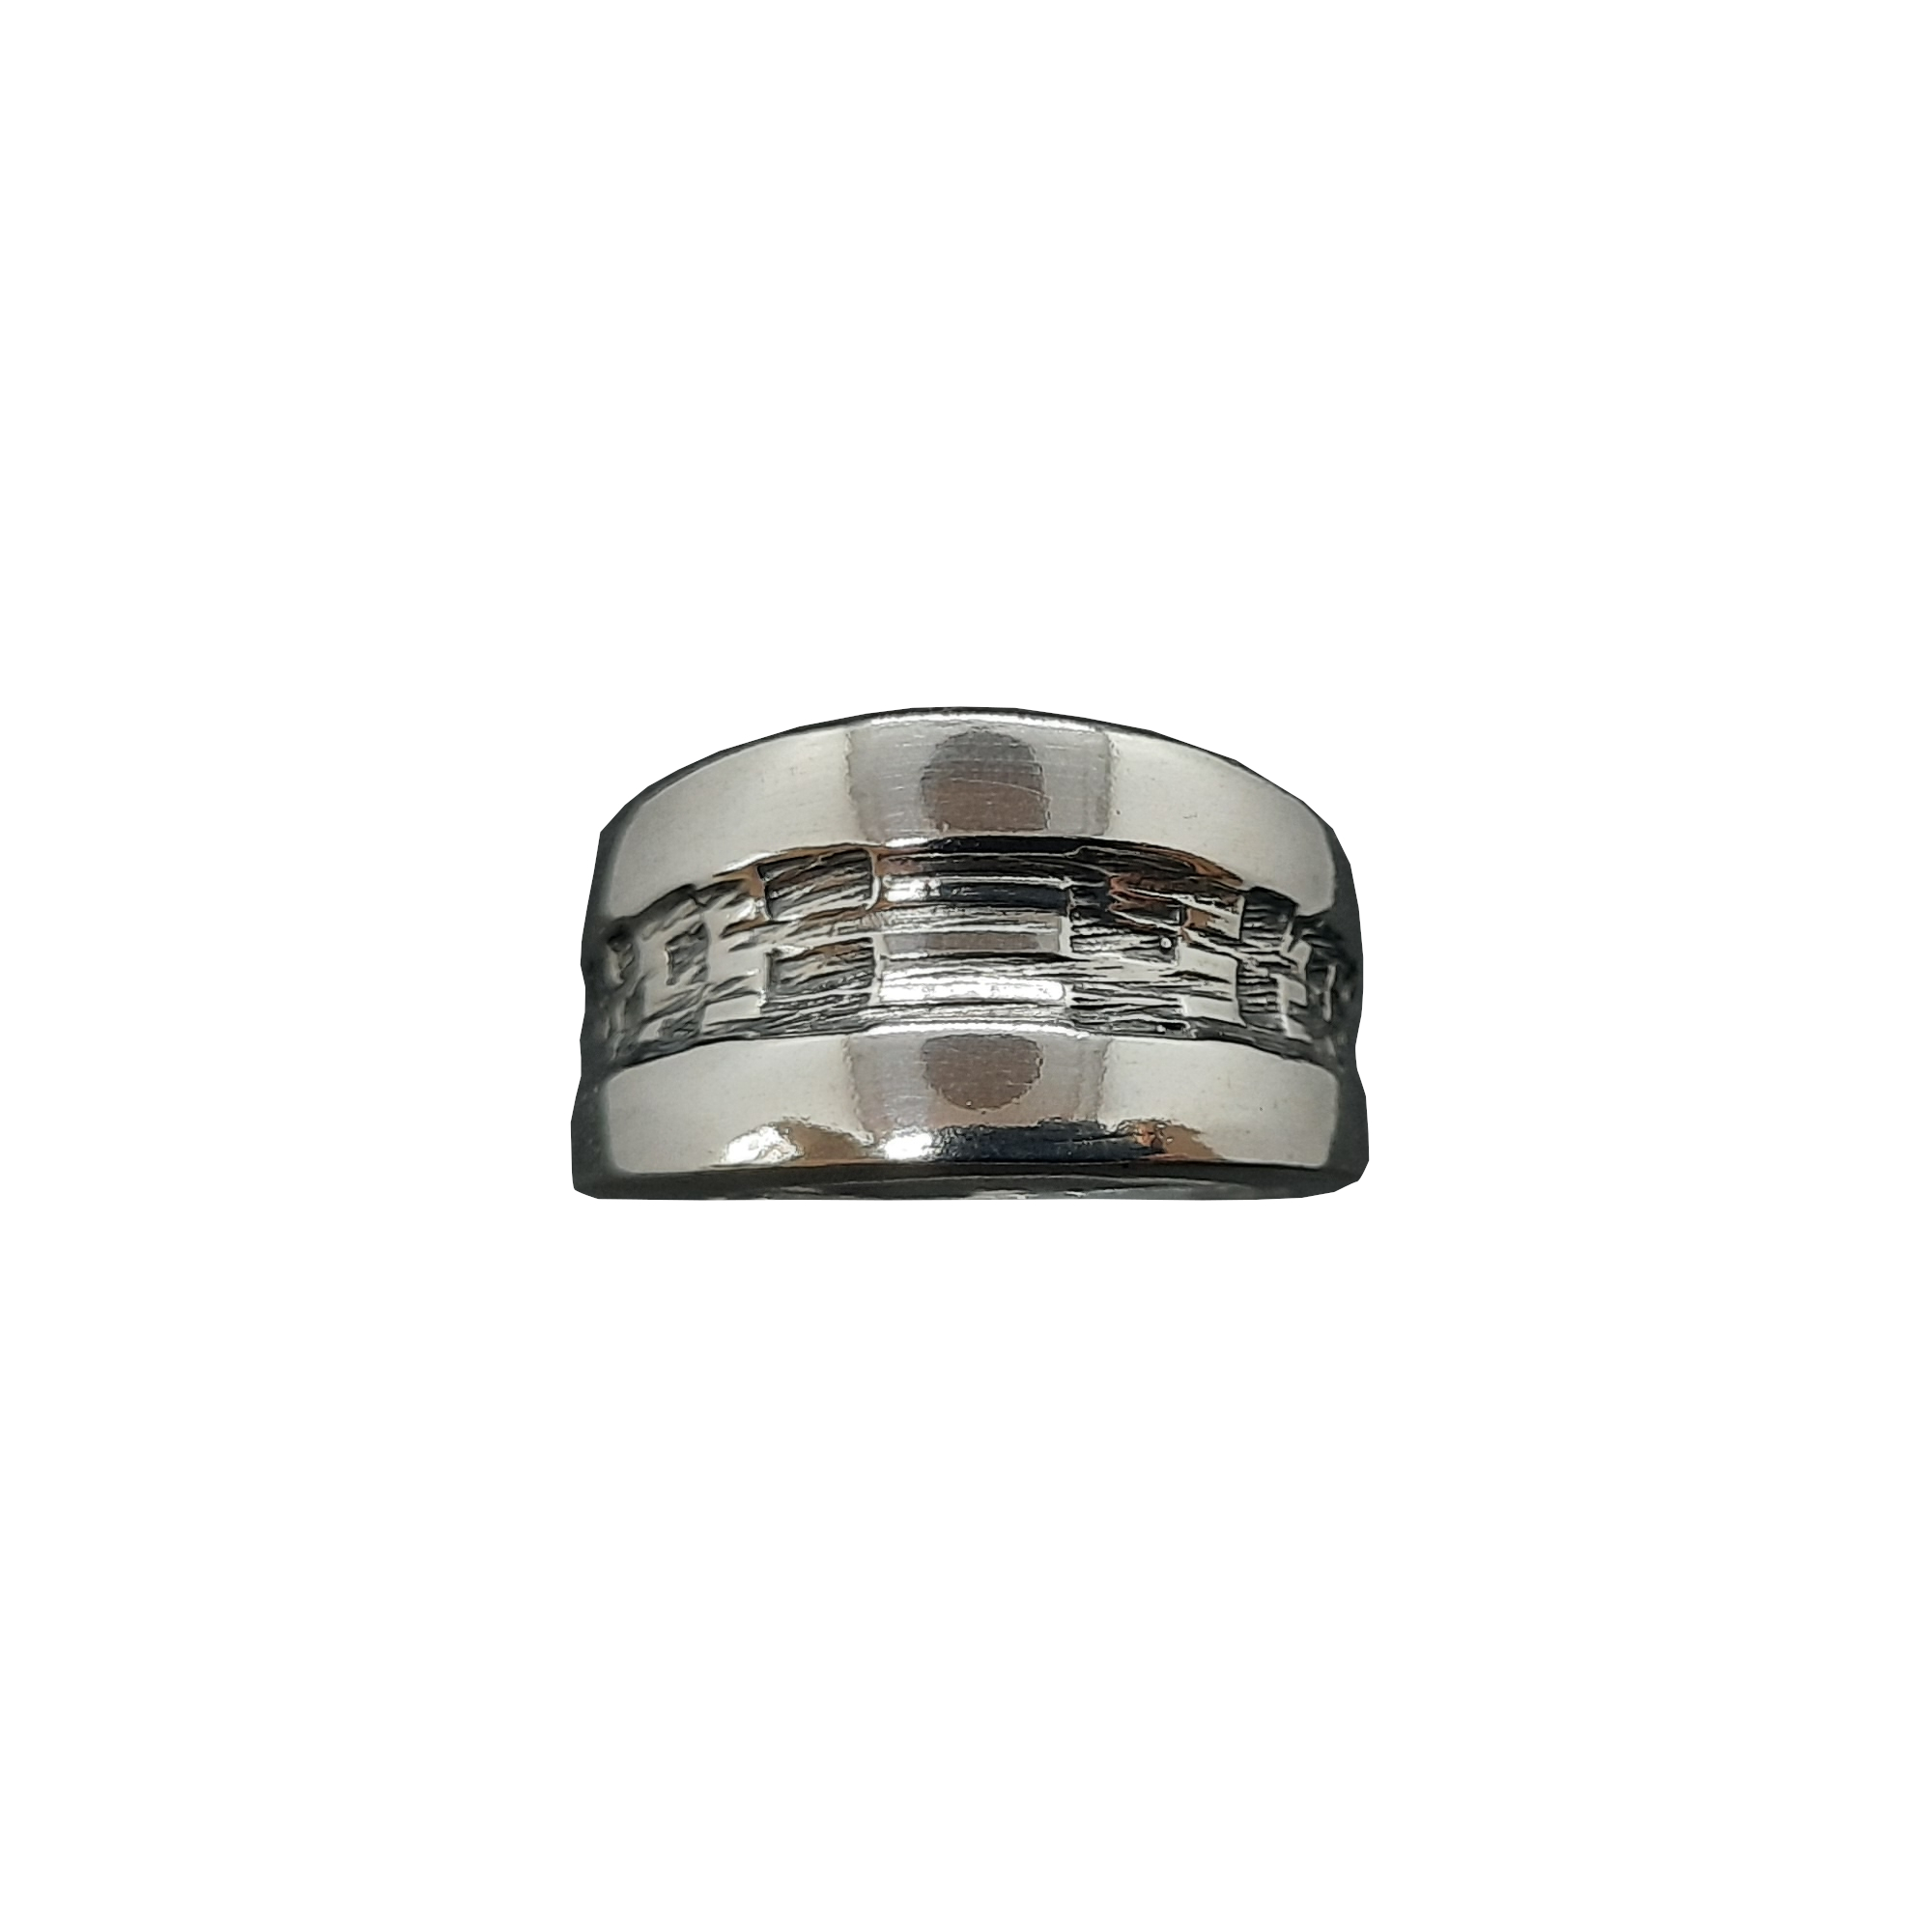 Silver ring - R002156